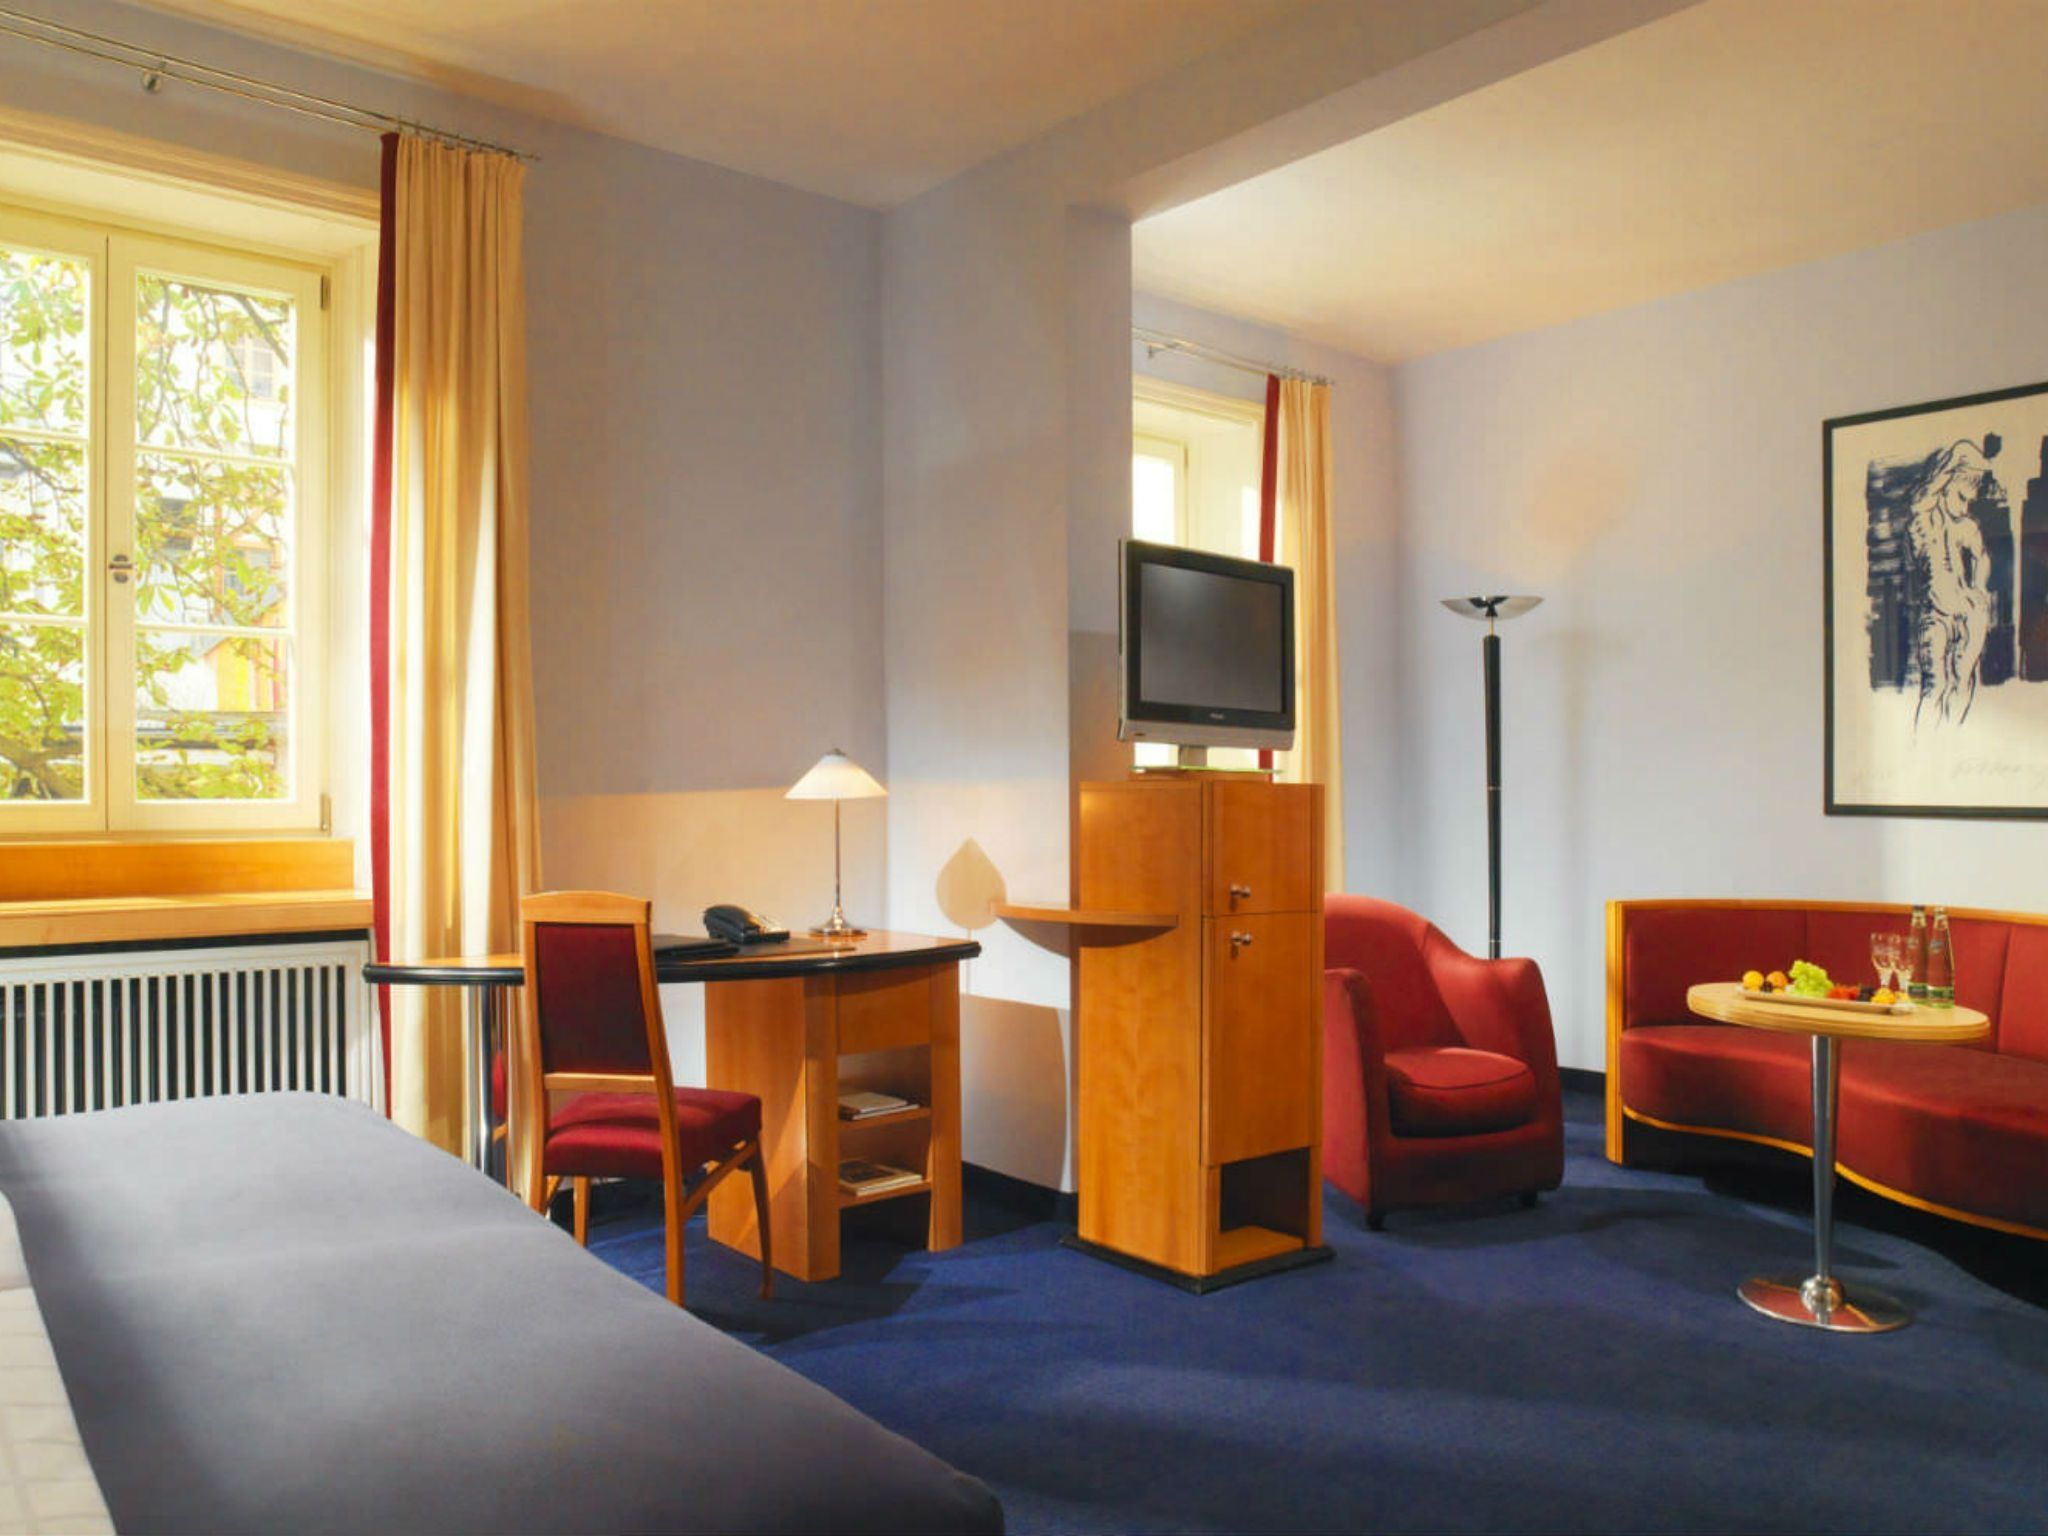 Junior Suite im Elephant Hotel Weimar